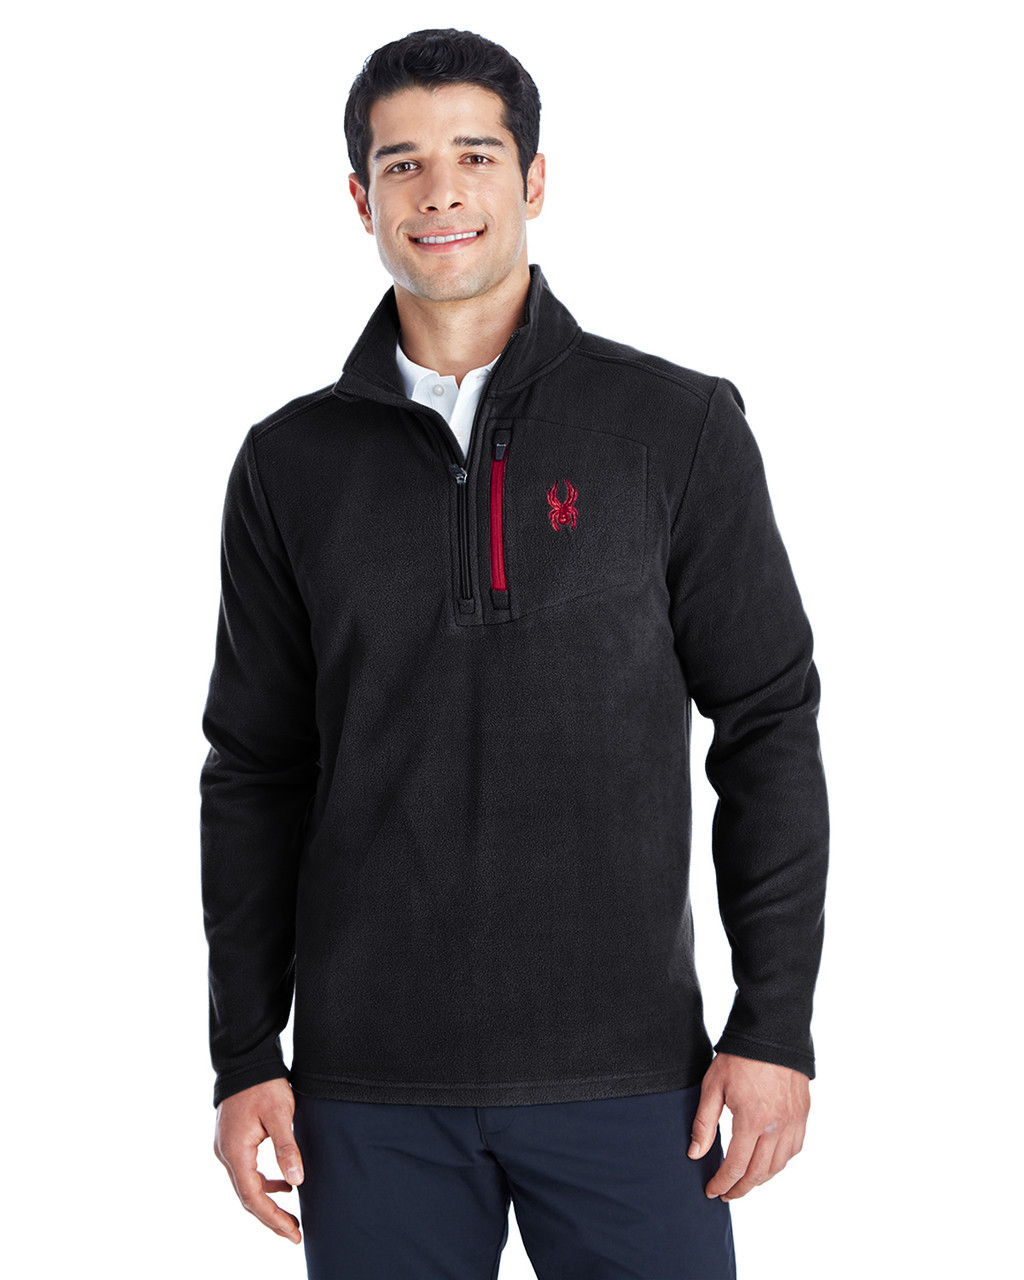 Black/Red -  187332 Spyder Men's Transport Quarter-Zip Fleece Pullover | BlankClothing.ca